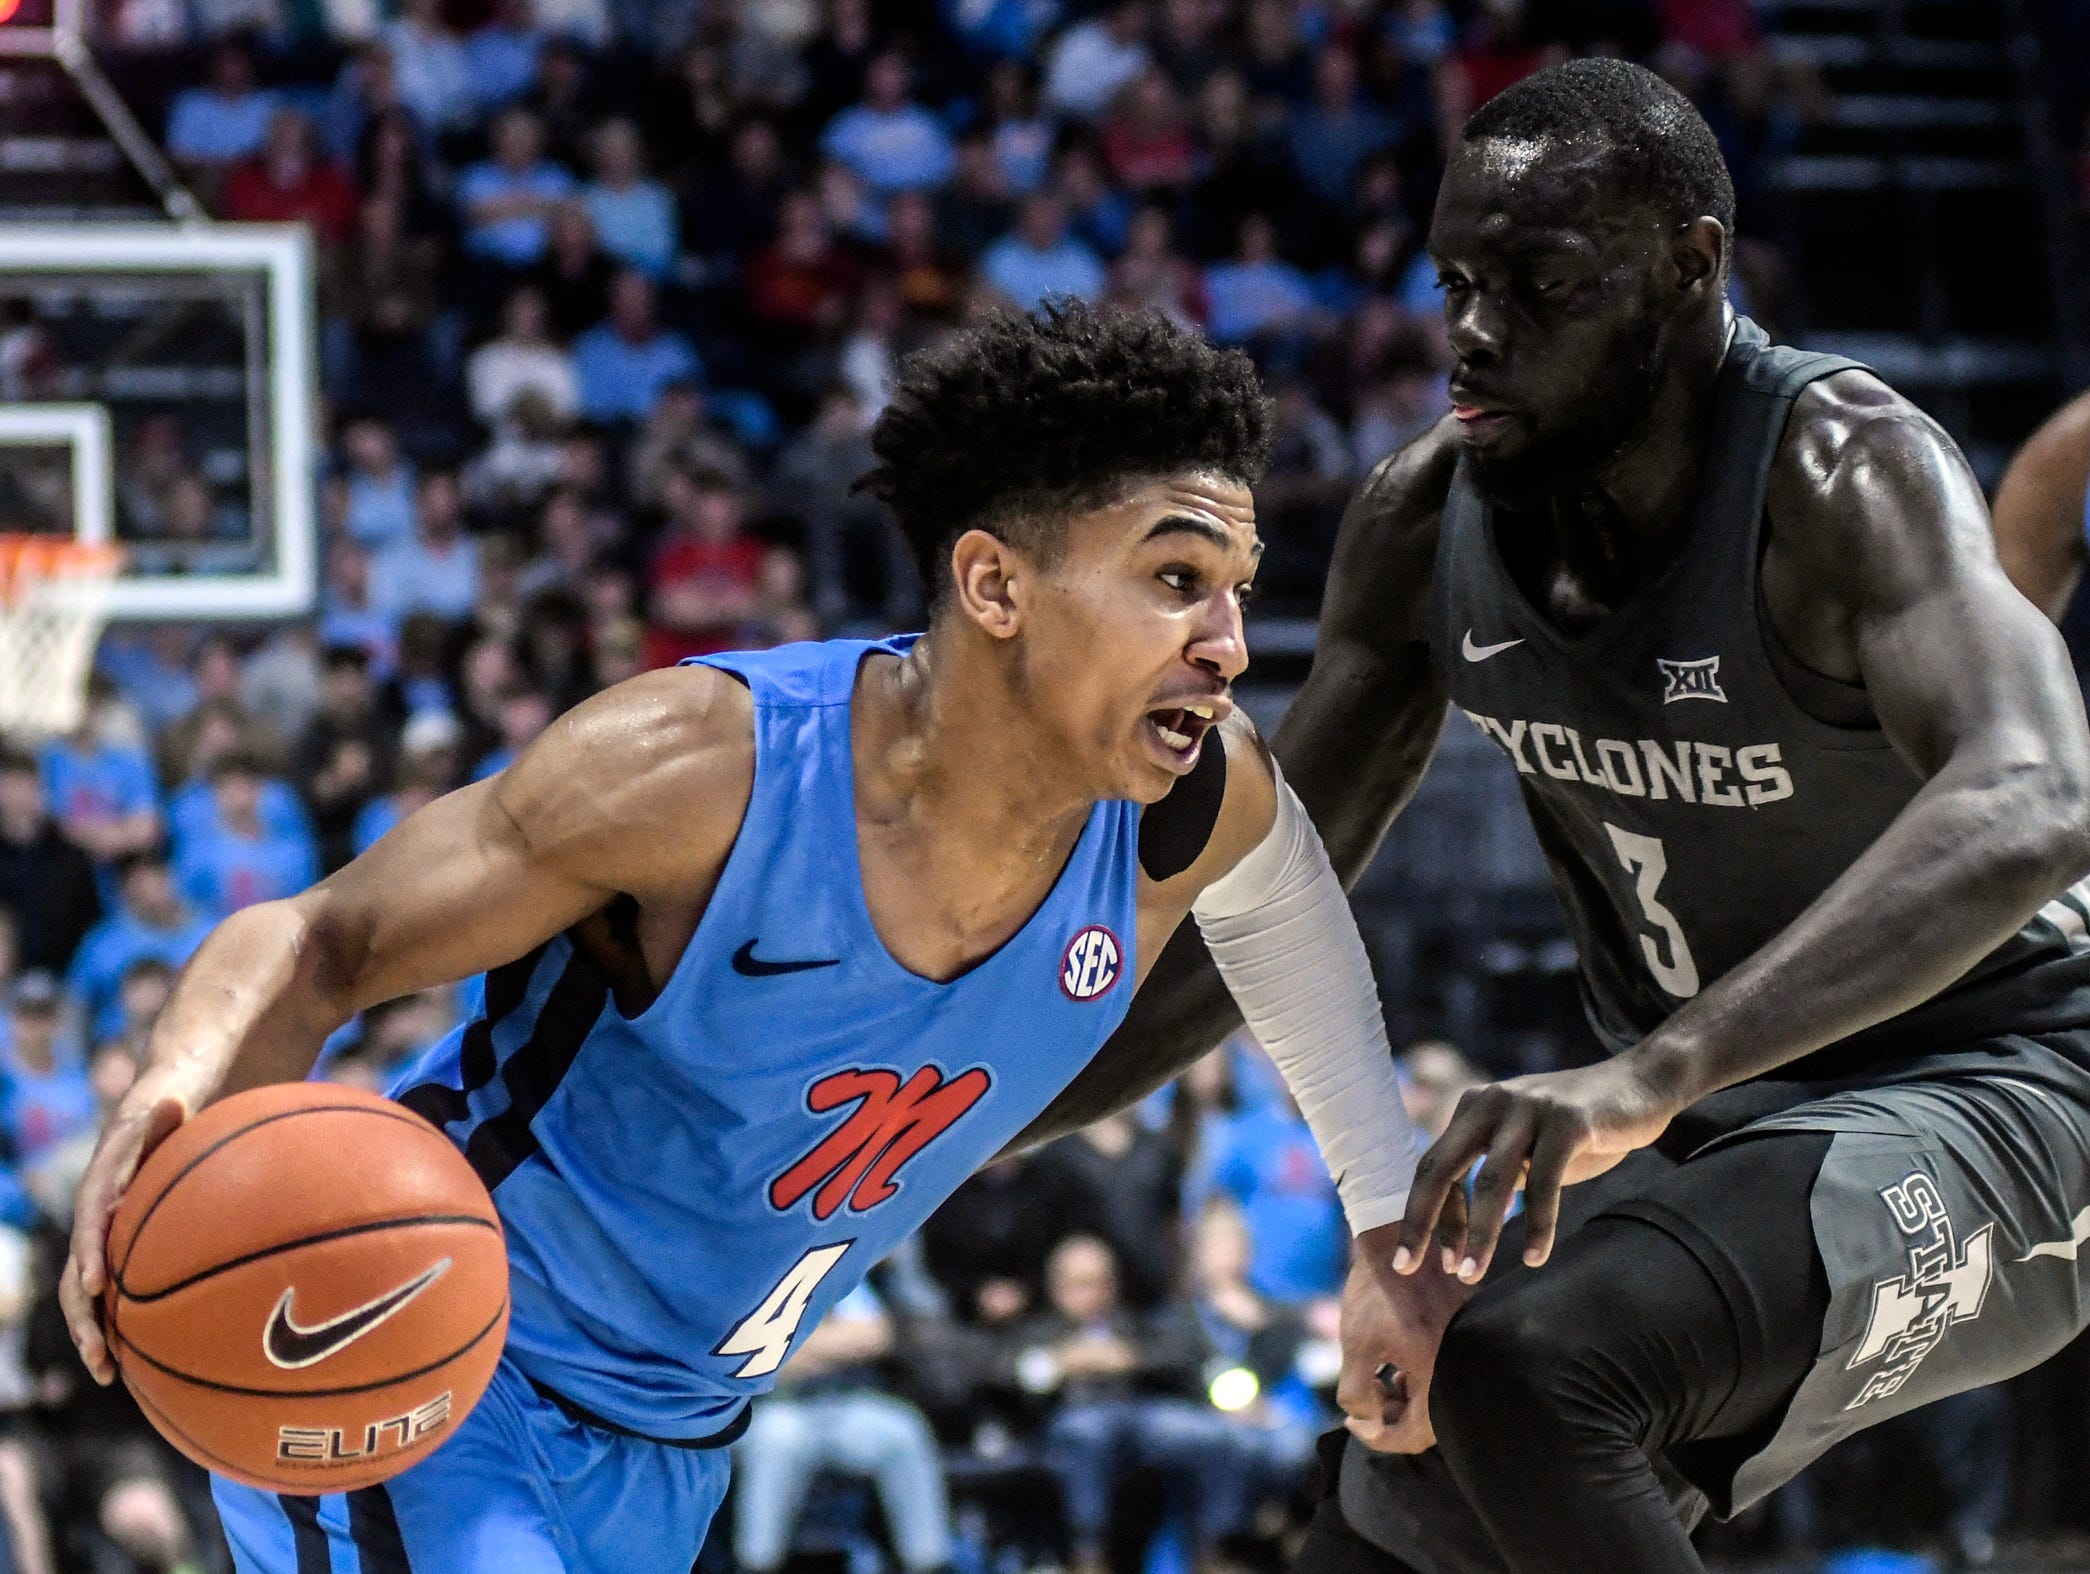 Mississippi guard Breein Tyree (4) drives against Iowa State guard Marial Shayok (3) during an NCAA college basketball game Saturday, Jan. 26, 2019, in Oxford, Miss.